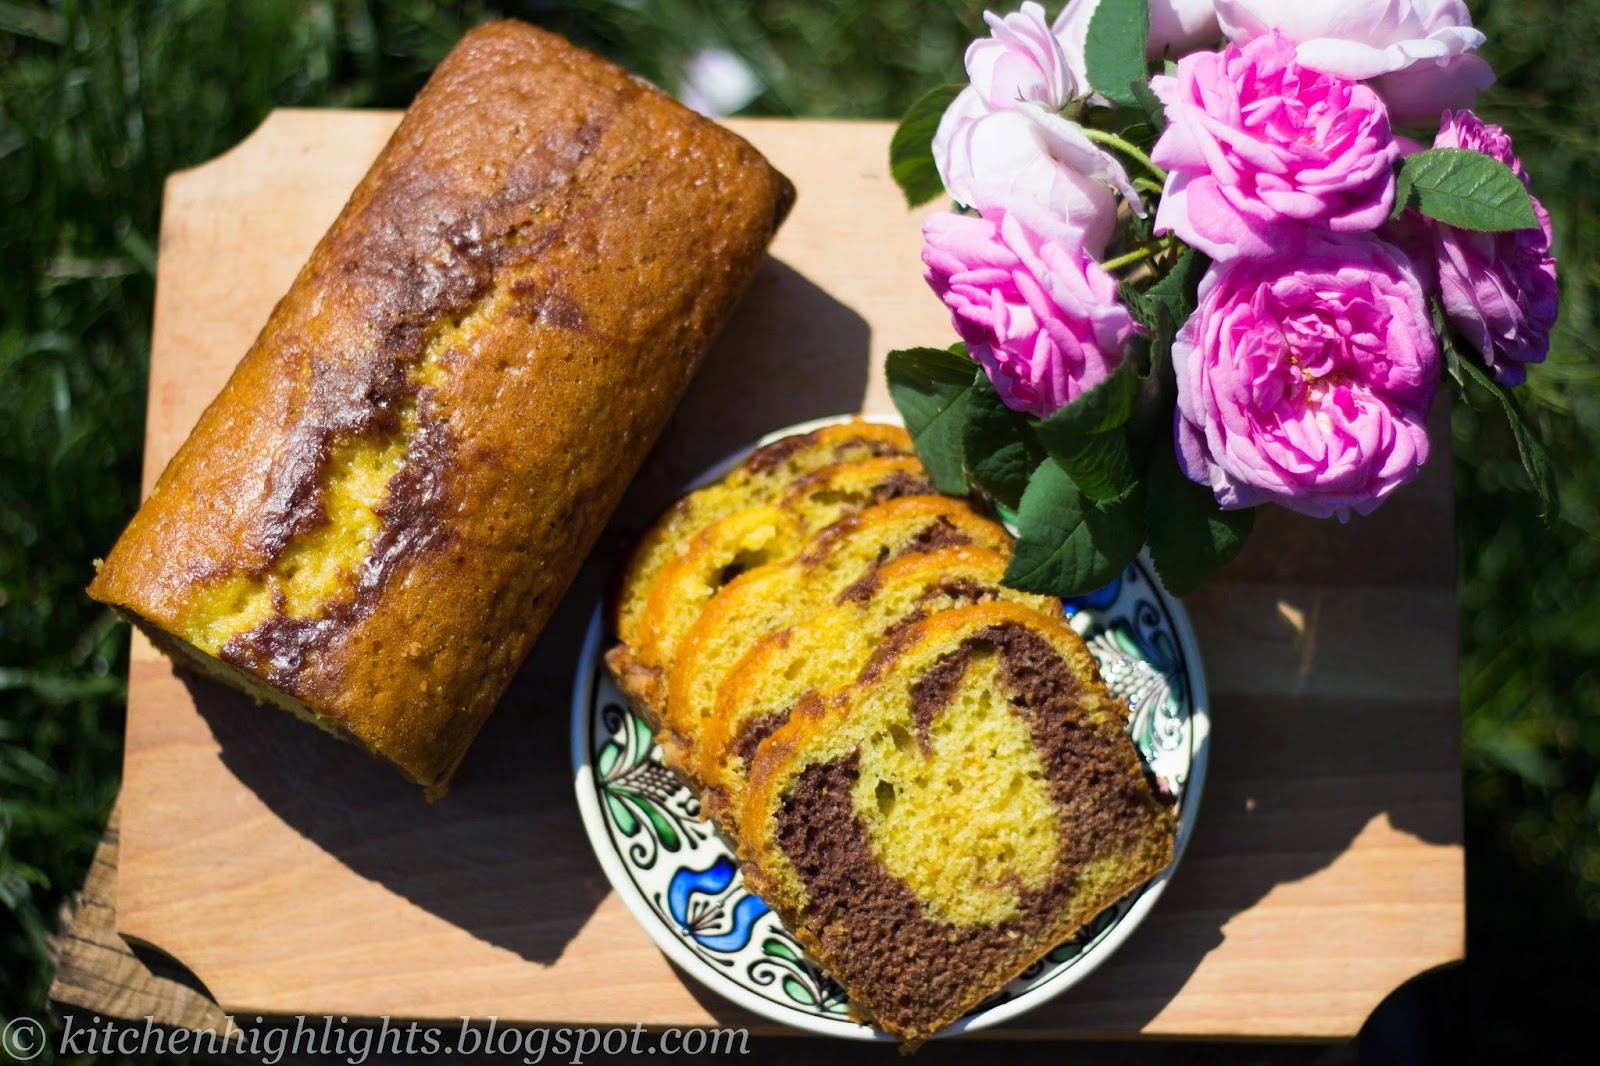 Packed with raisins, lemon zest and cocoa this sweet loaf recipe is incredibly delicious